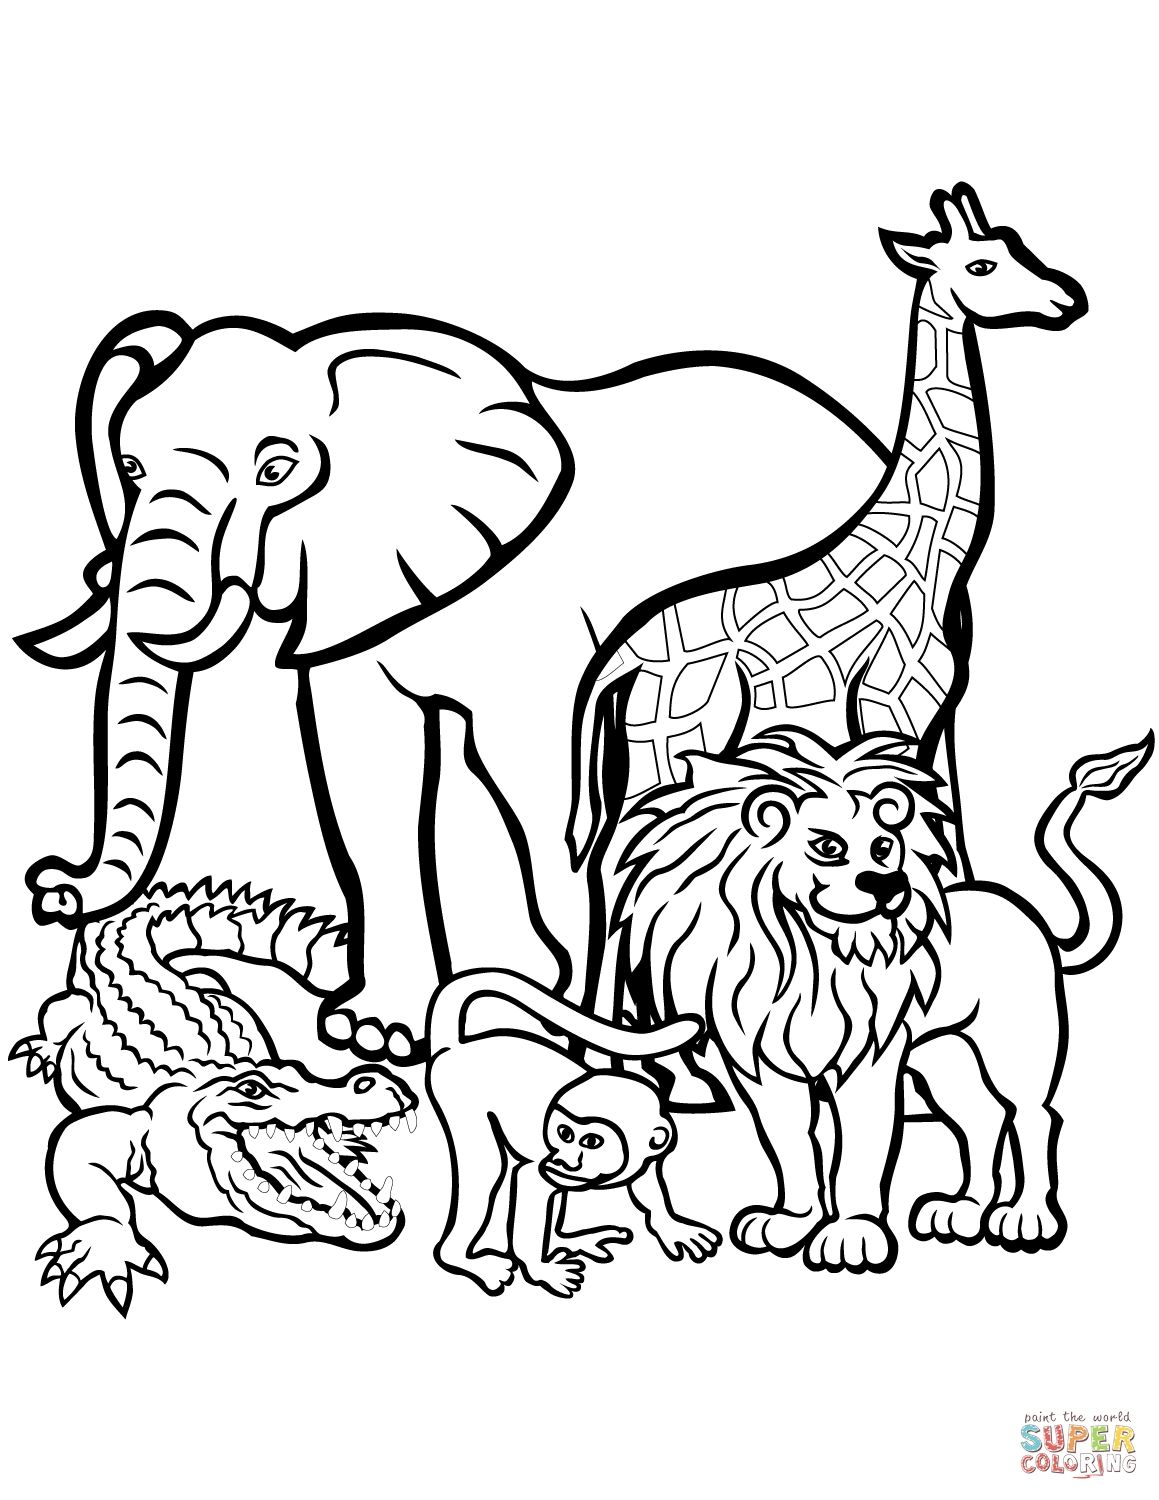 Beautifull Wild Animal Coloring Pages Image Zoo animal